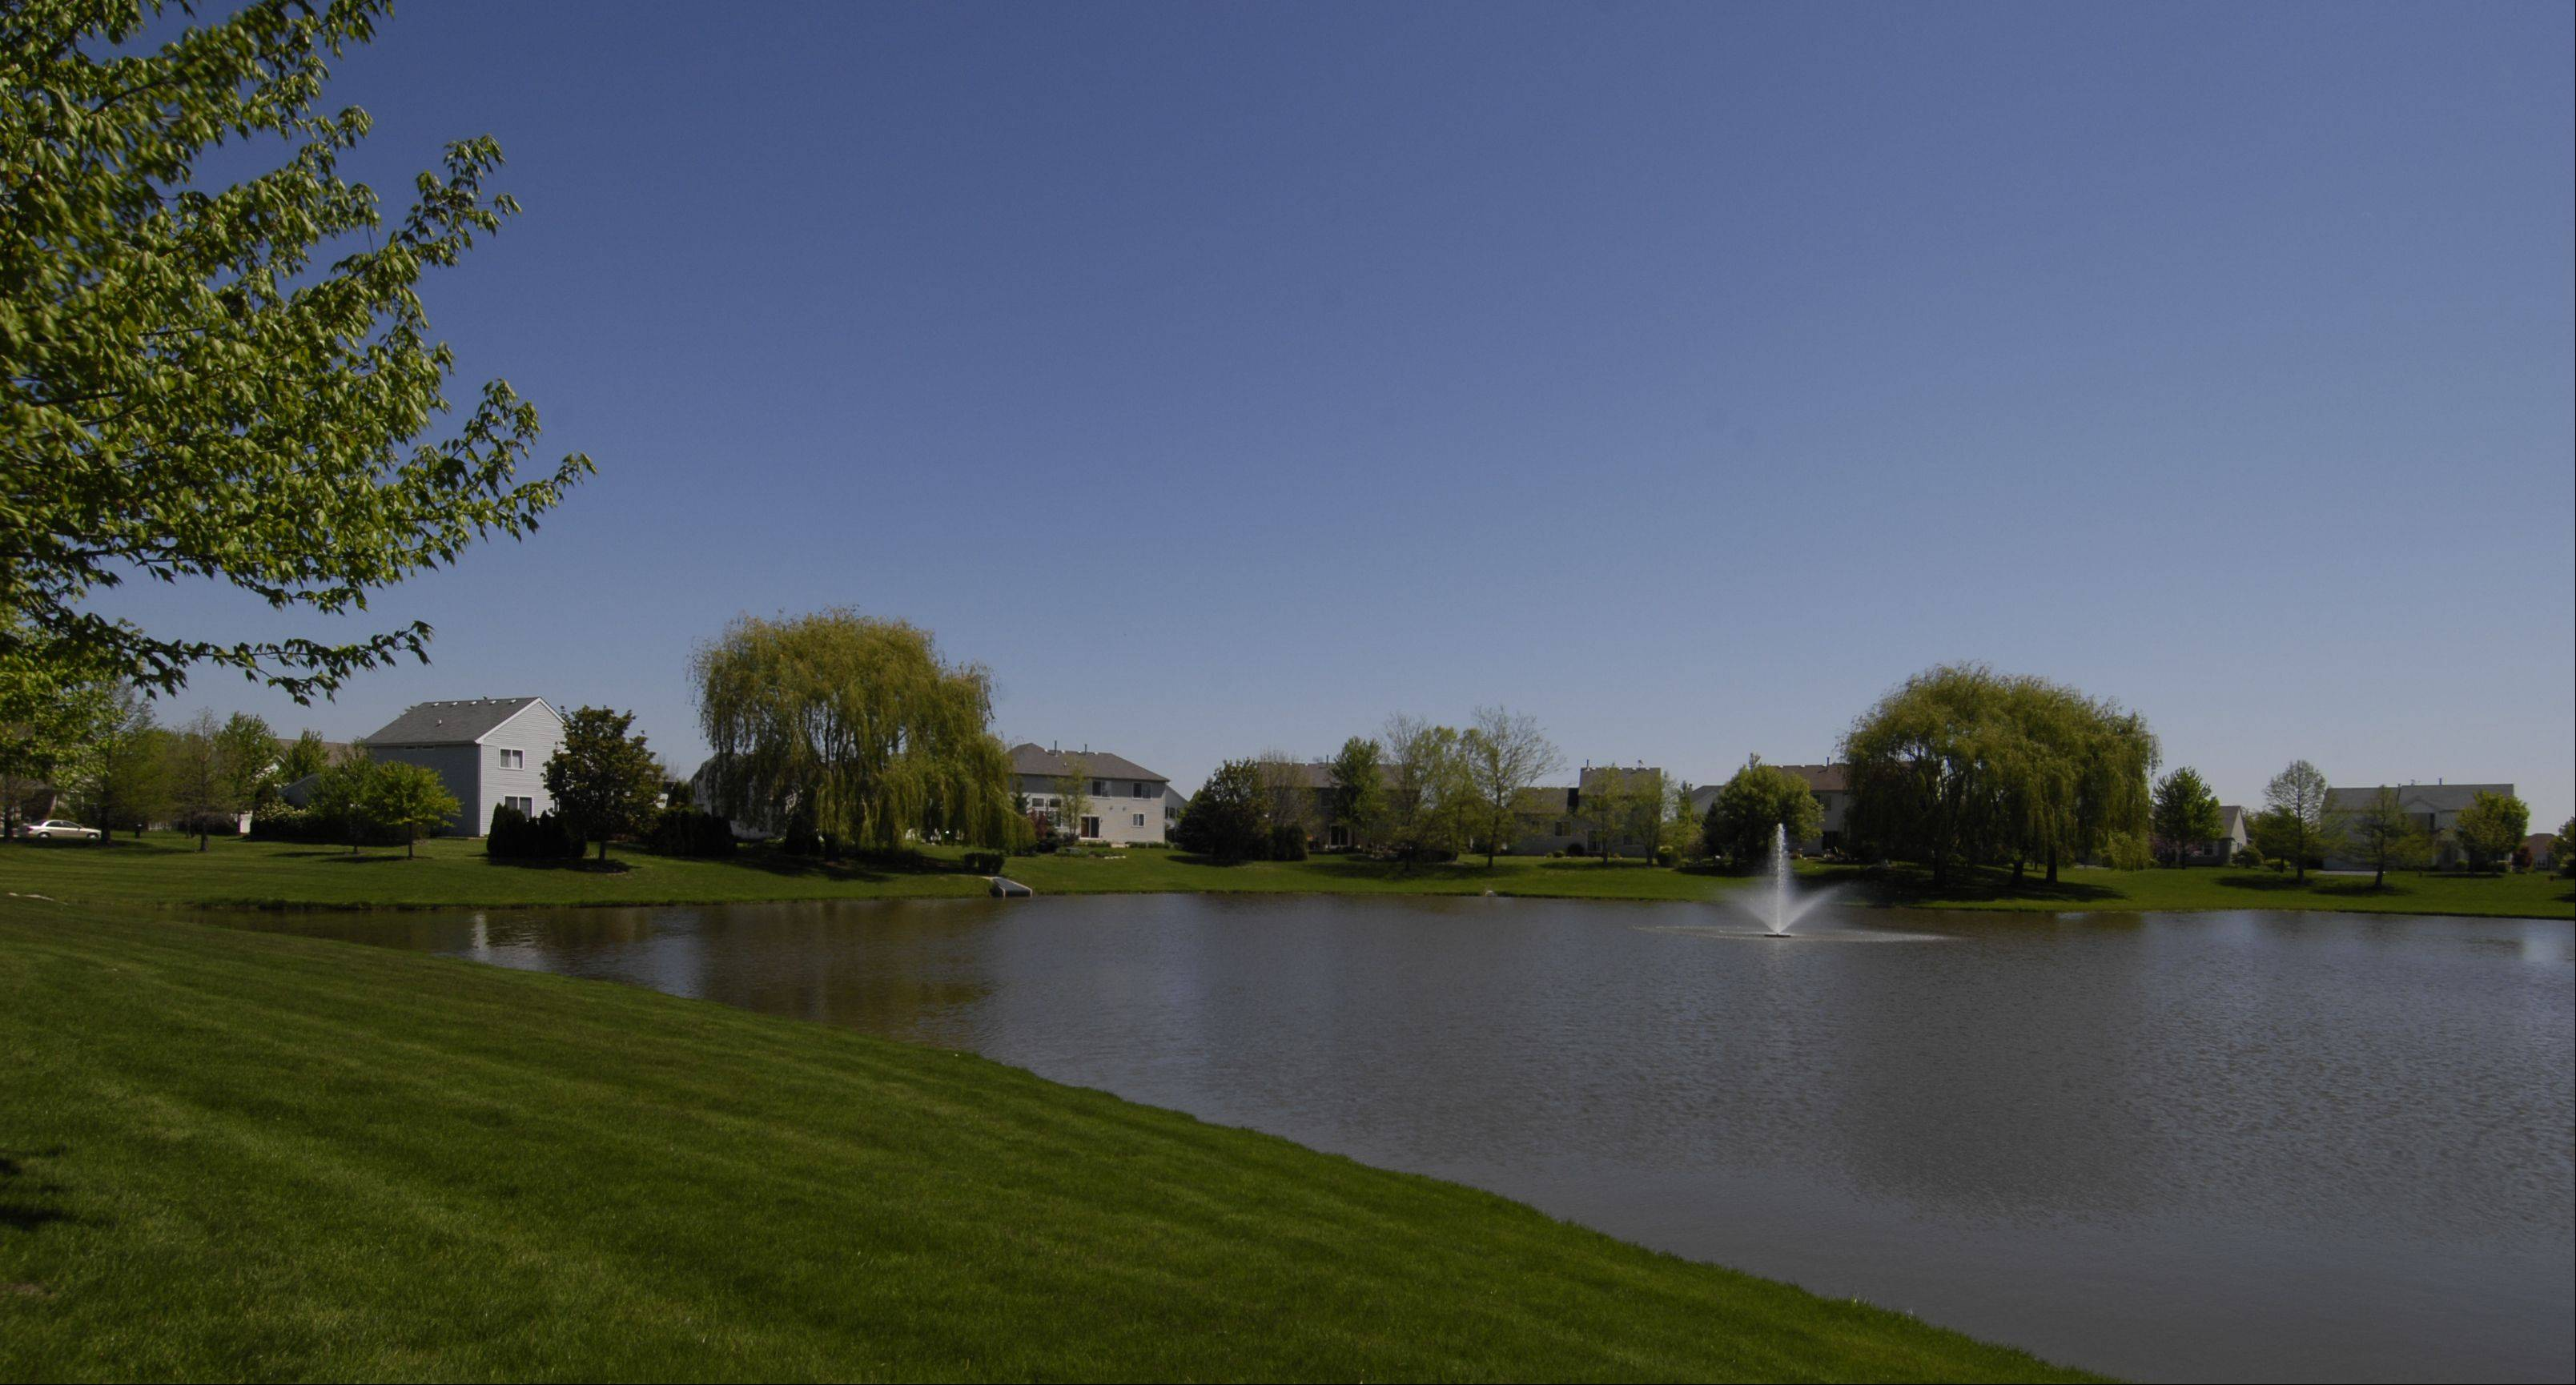 A small lake is an attractive feature of the Orchard Crossing neighborhood.